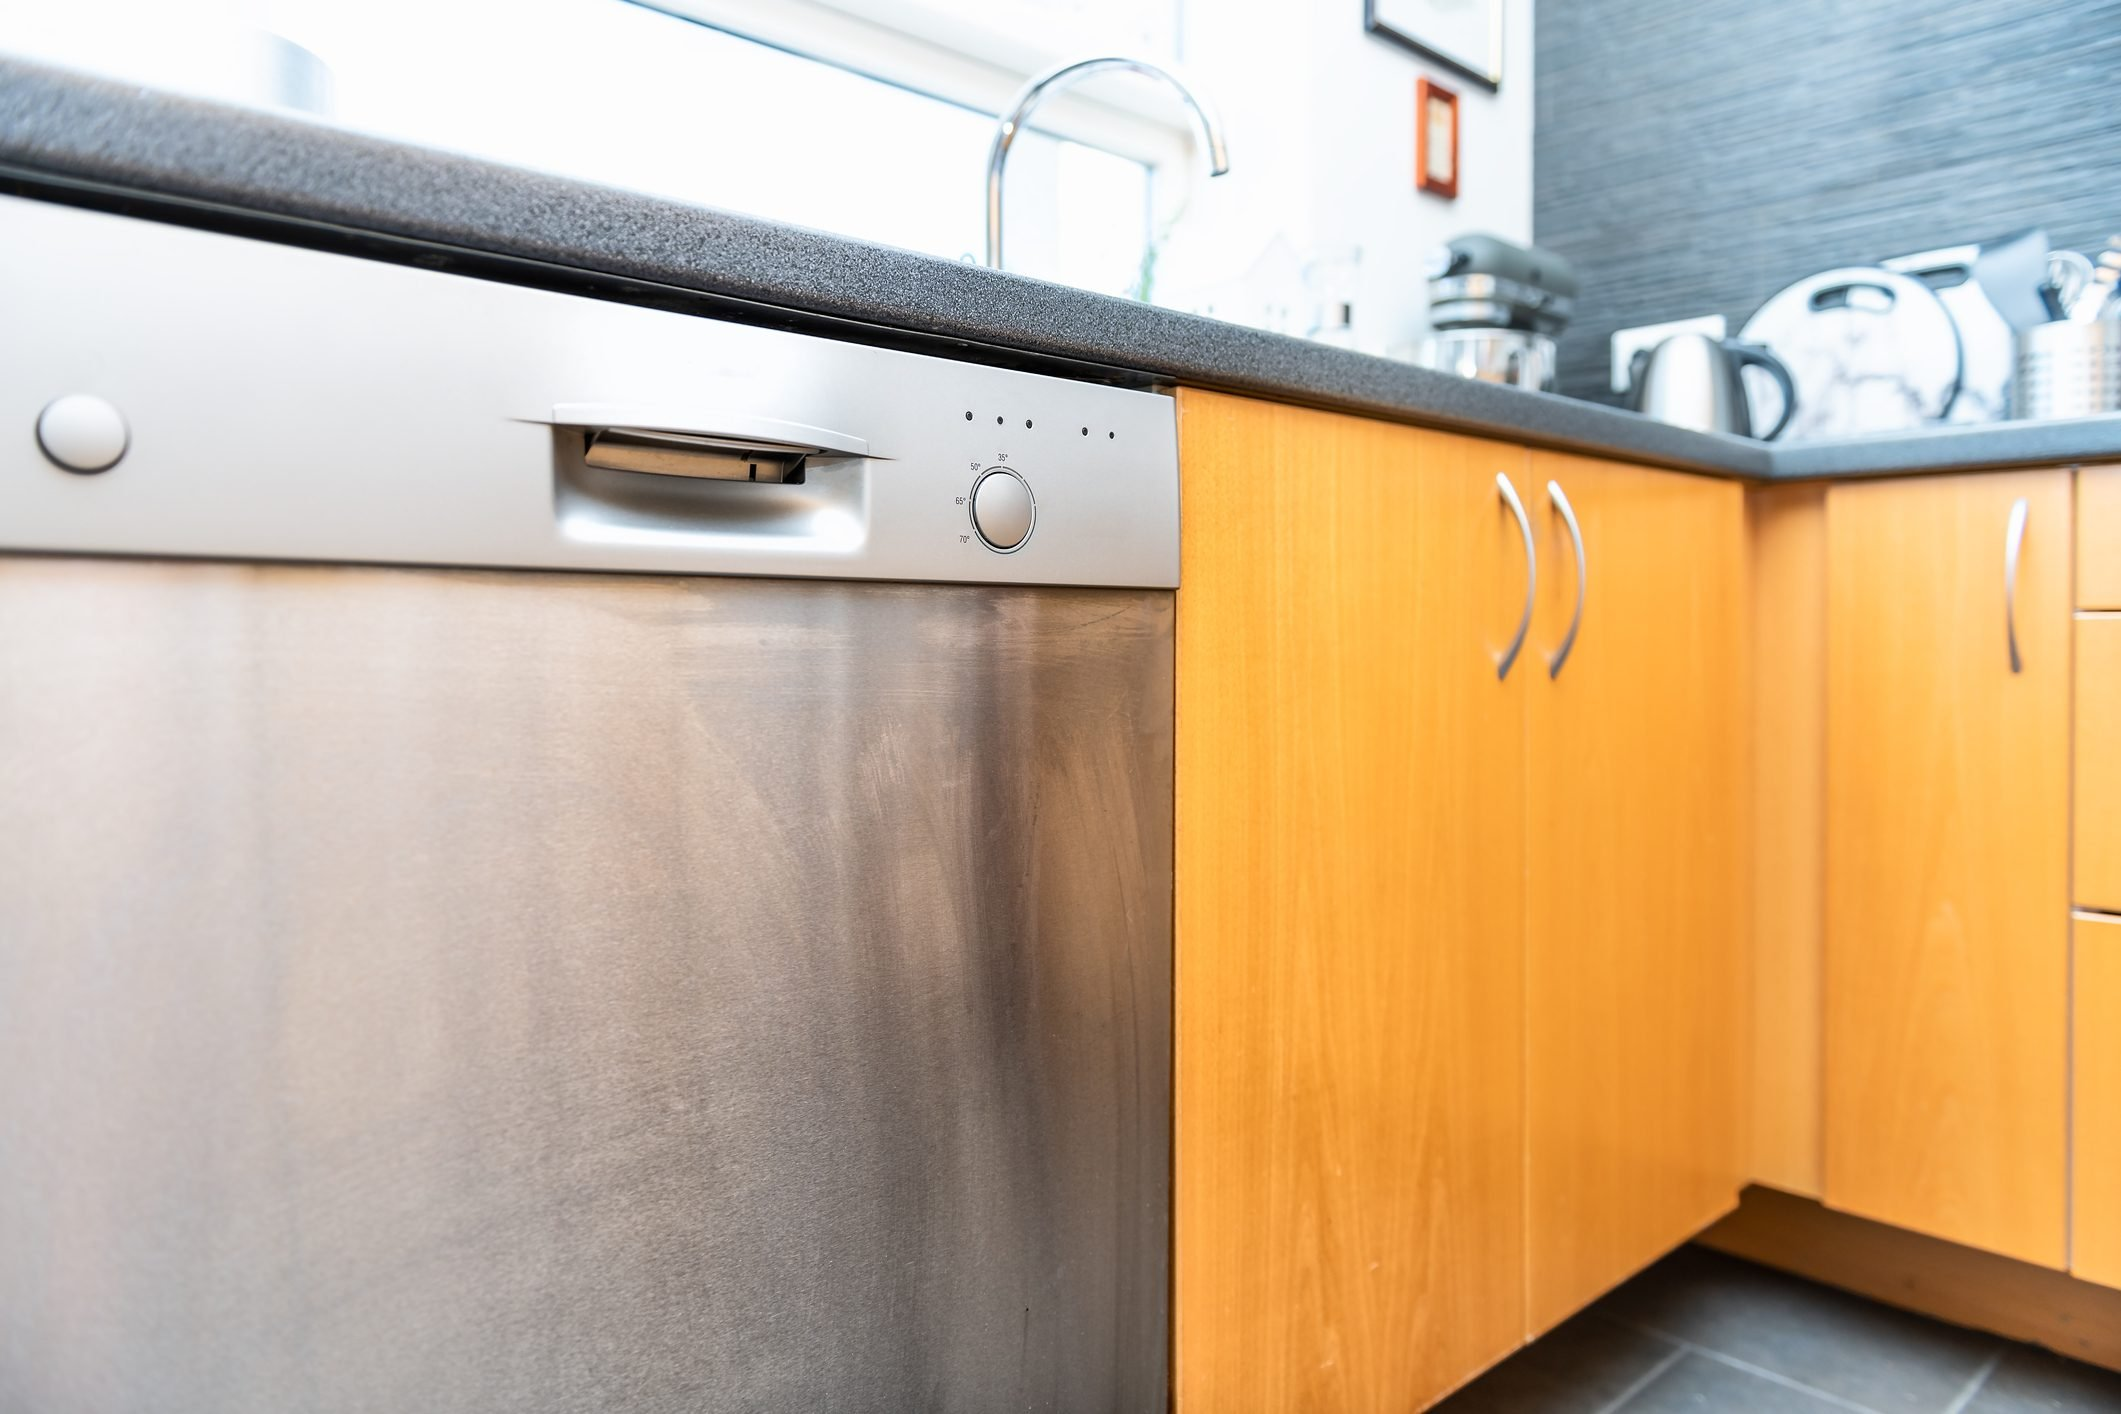 Closeup of side of modern wood, wooden finish kitchen drawers with steel handles, cabinets, dishwasher, tile, tiled brown, yellow floor, utensils, faucet